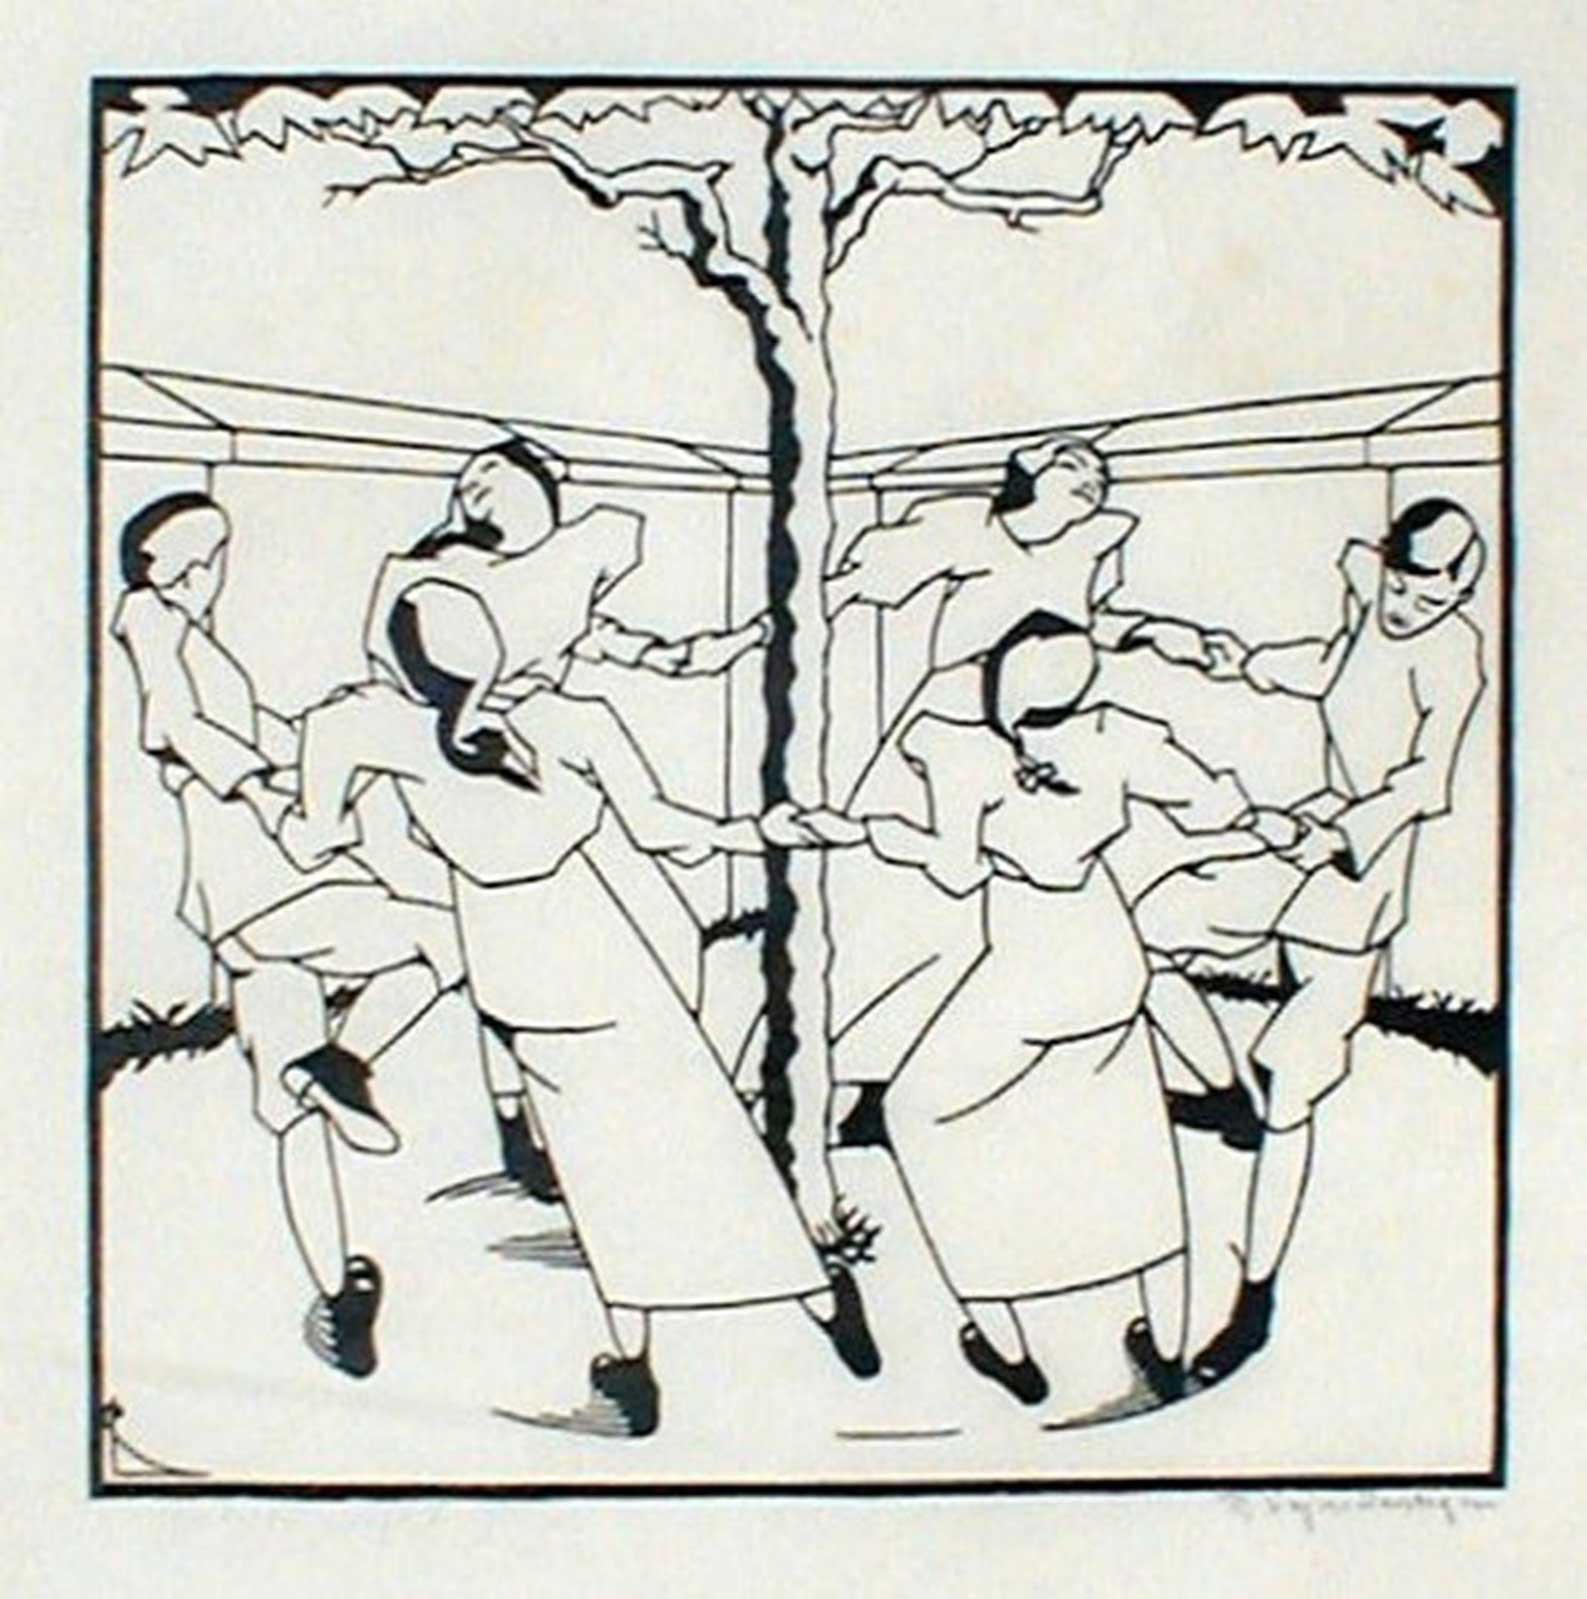 Talusman Fine Art Robert Pajer-Gartegen - 'Ring Dance 2' - Woodcut